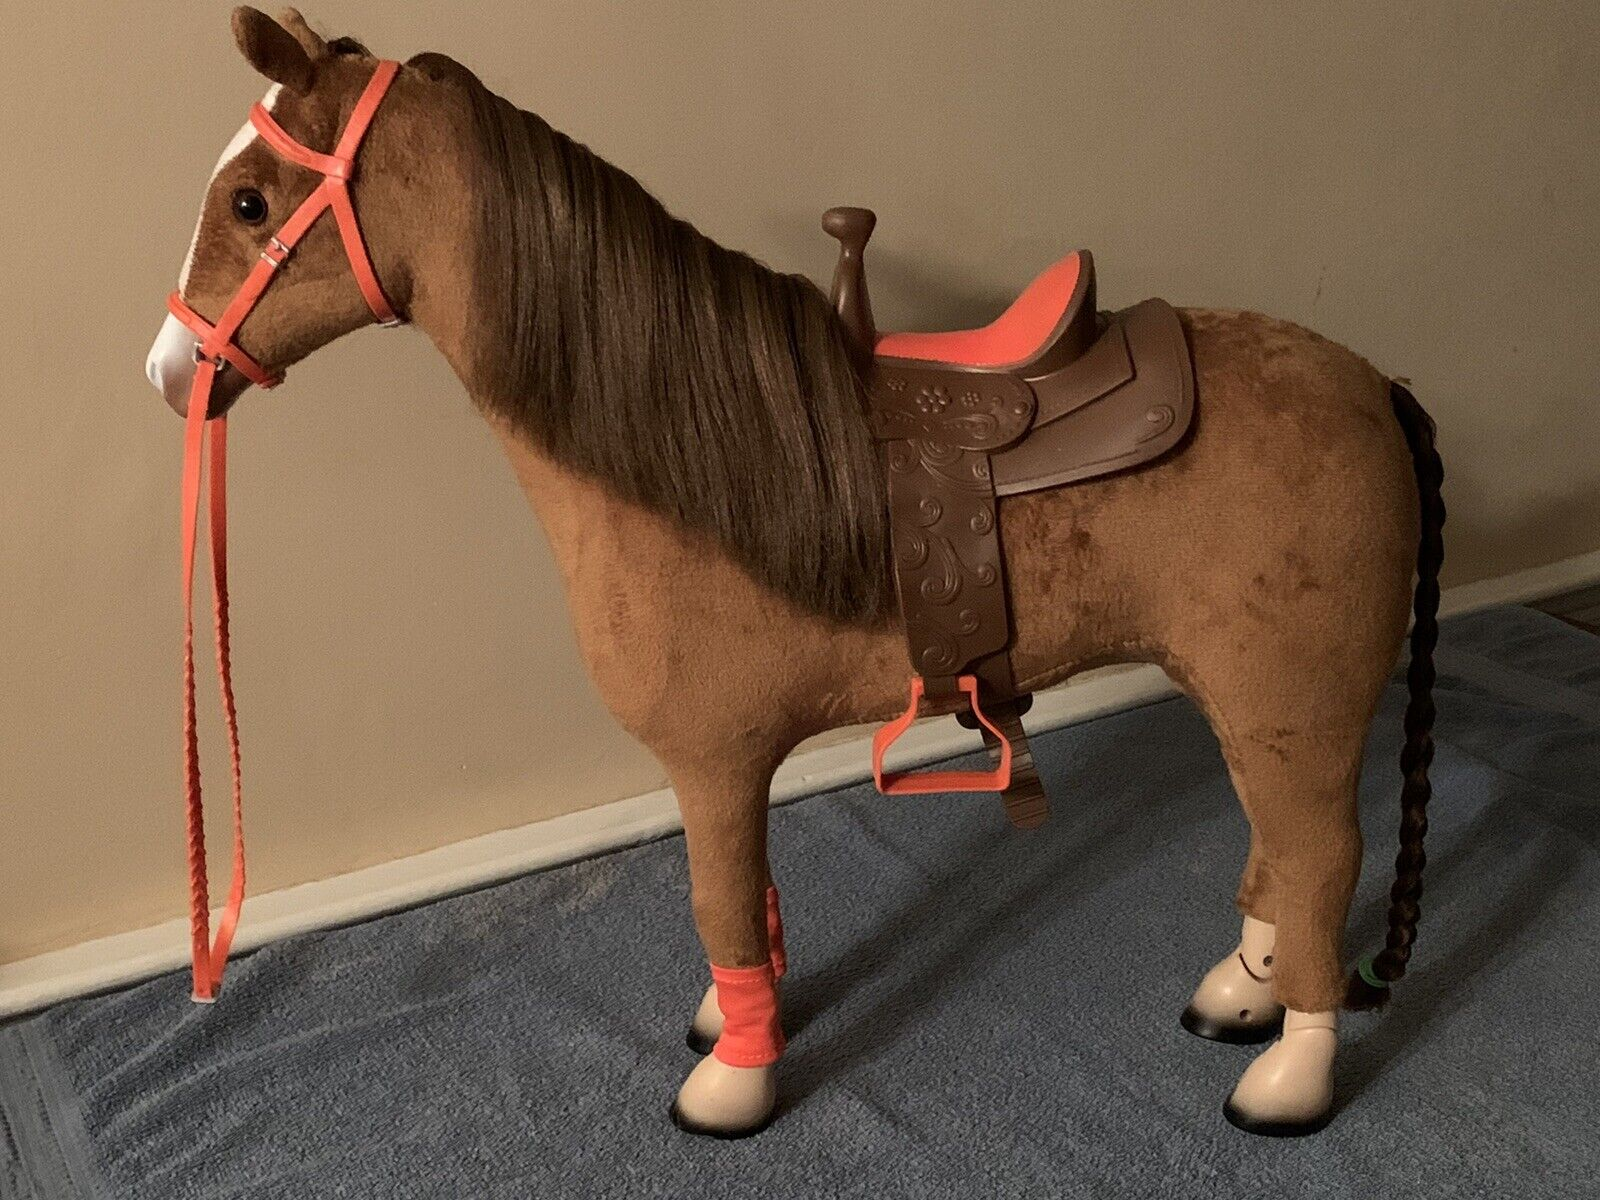 My Life 18-Inch Poseable Brown Horse Brown Coat Mane With Saddle For 18 Dolls - $15.00